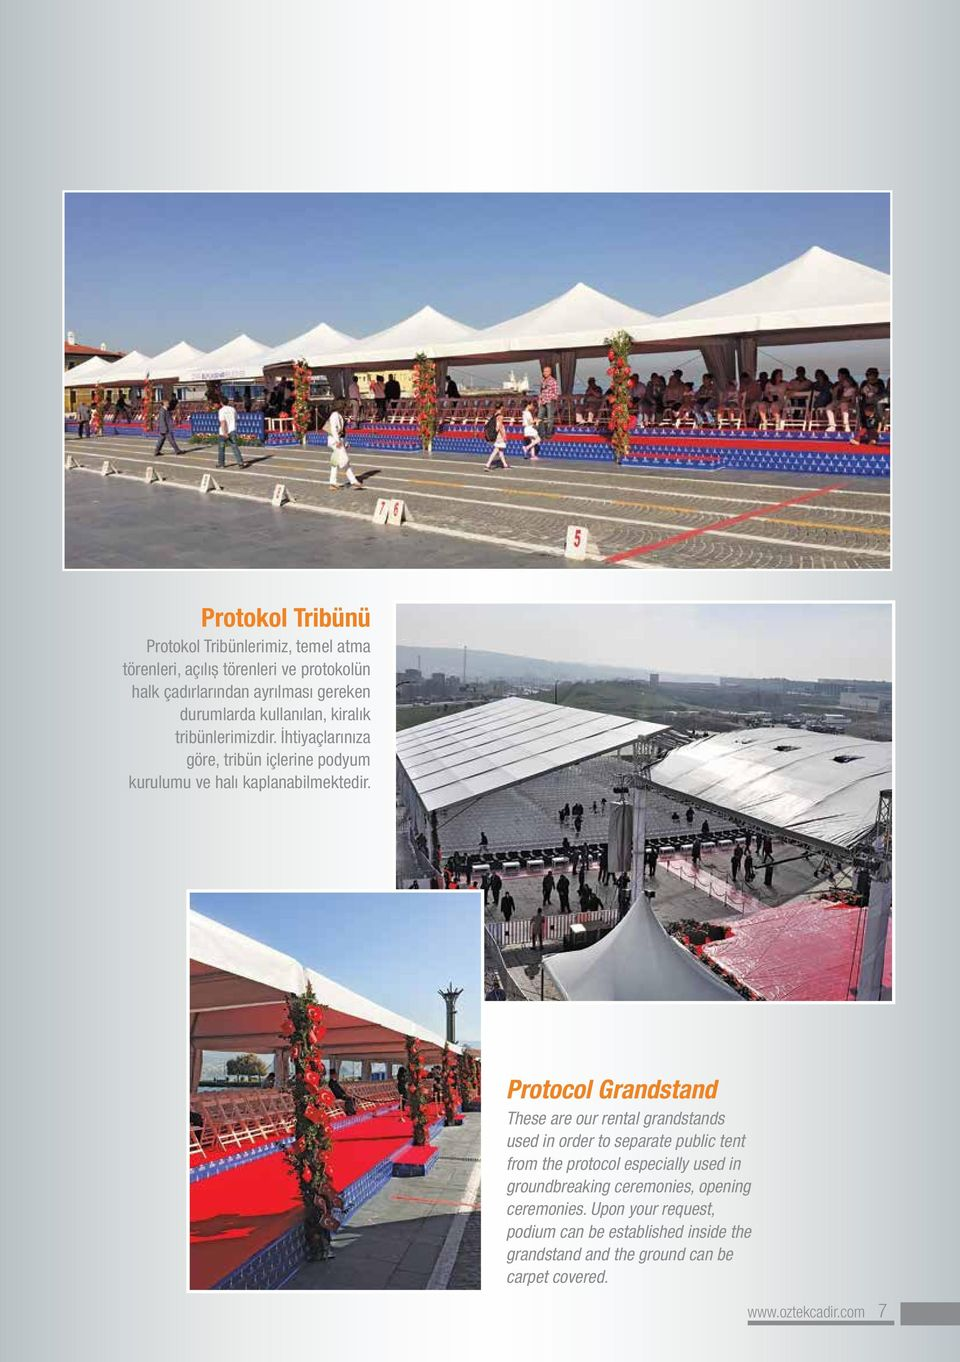 Protocol Grandstand These are our rental grandstands used in order to separate public tent from the protocol especially used in